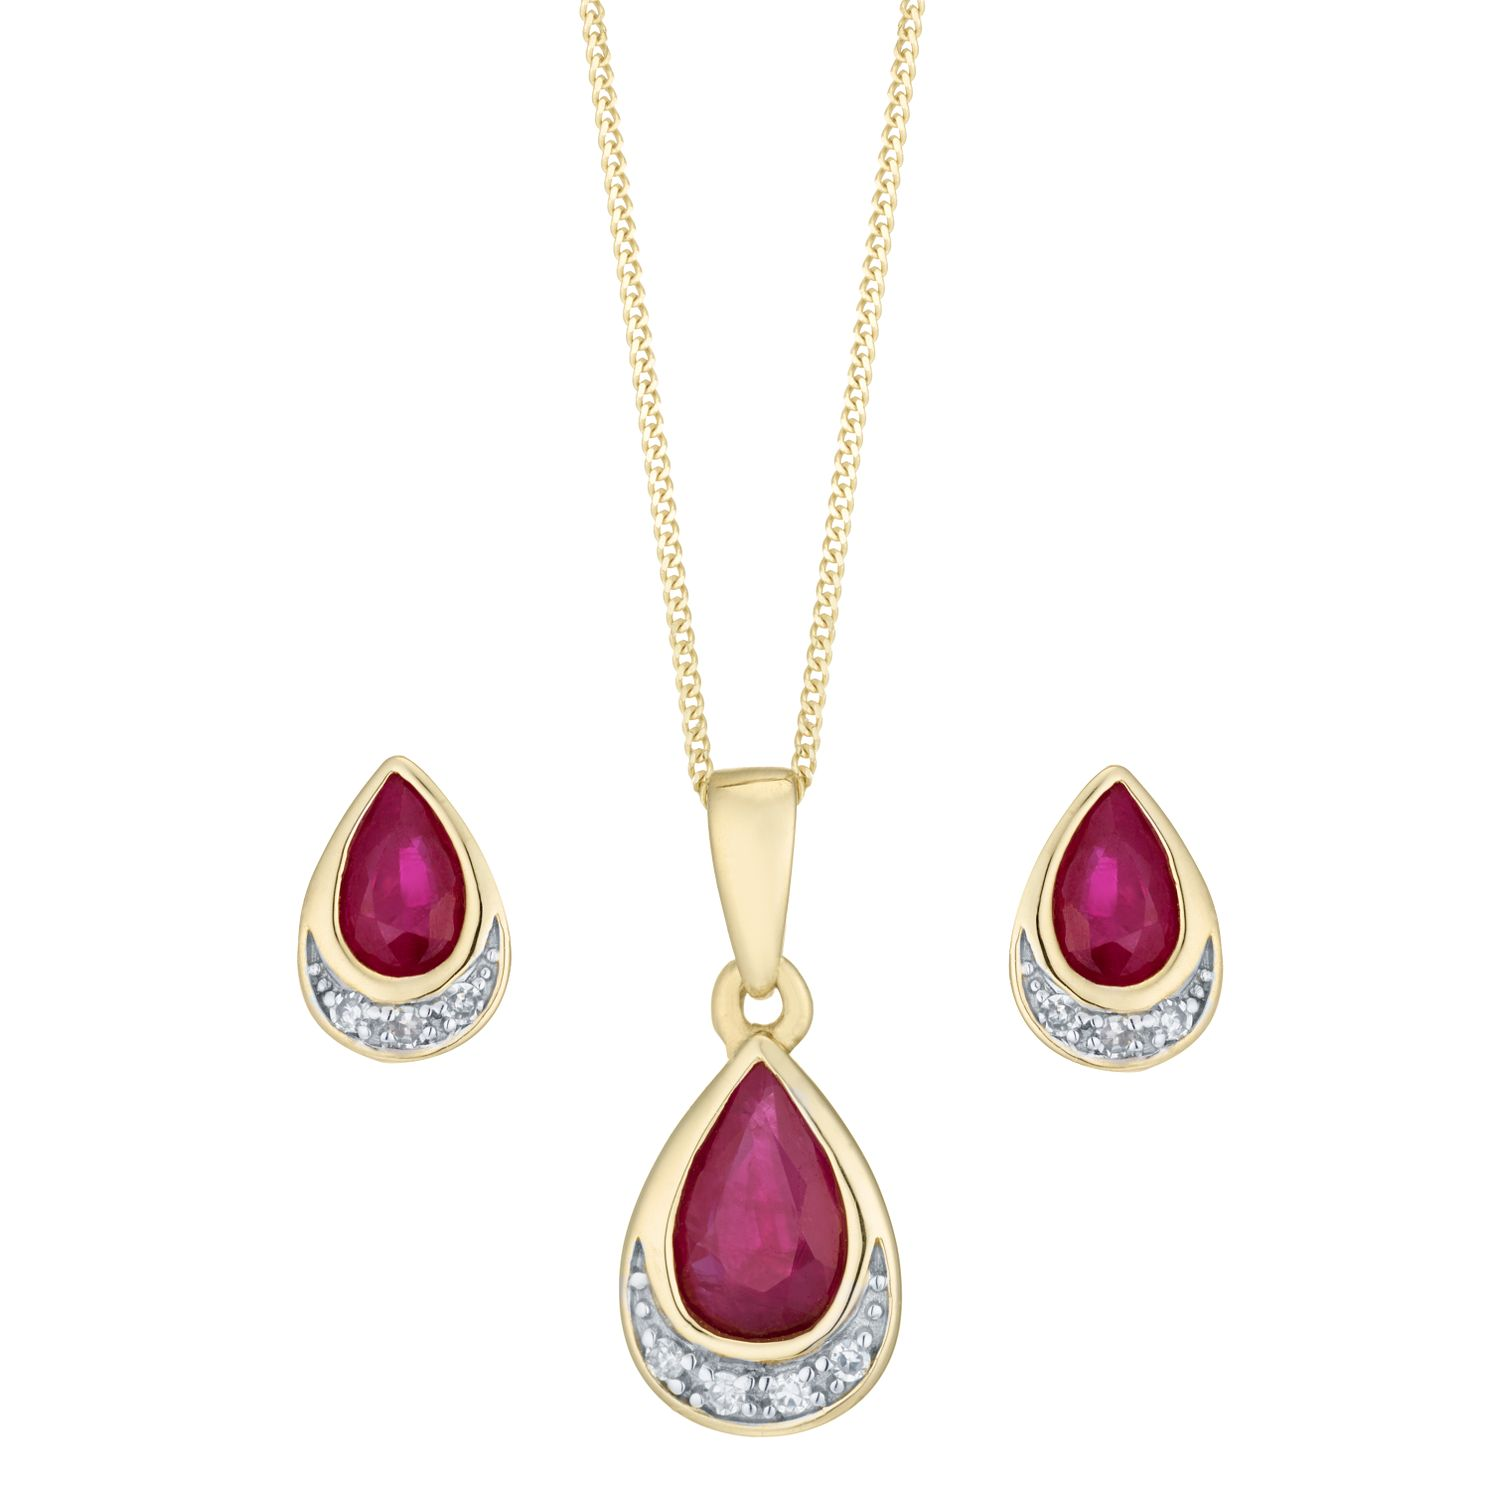 9ct Yellow Gold Ruby And Diamond Jewellery Set - Product number 8147388